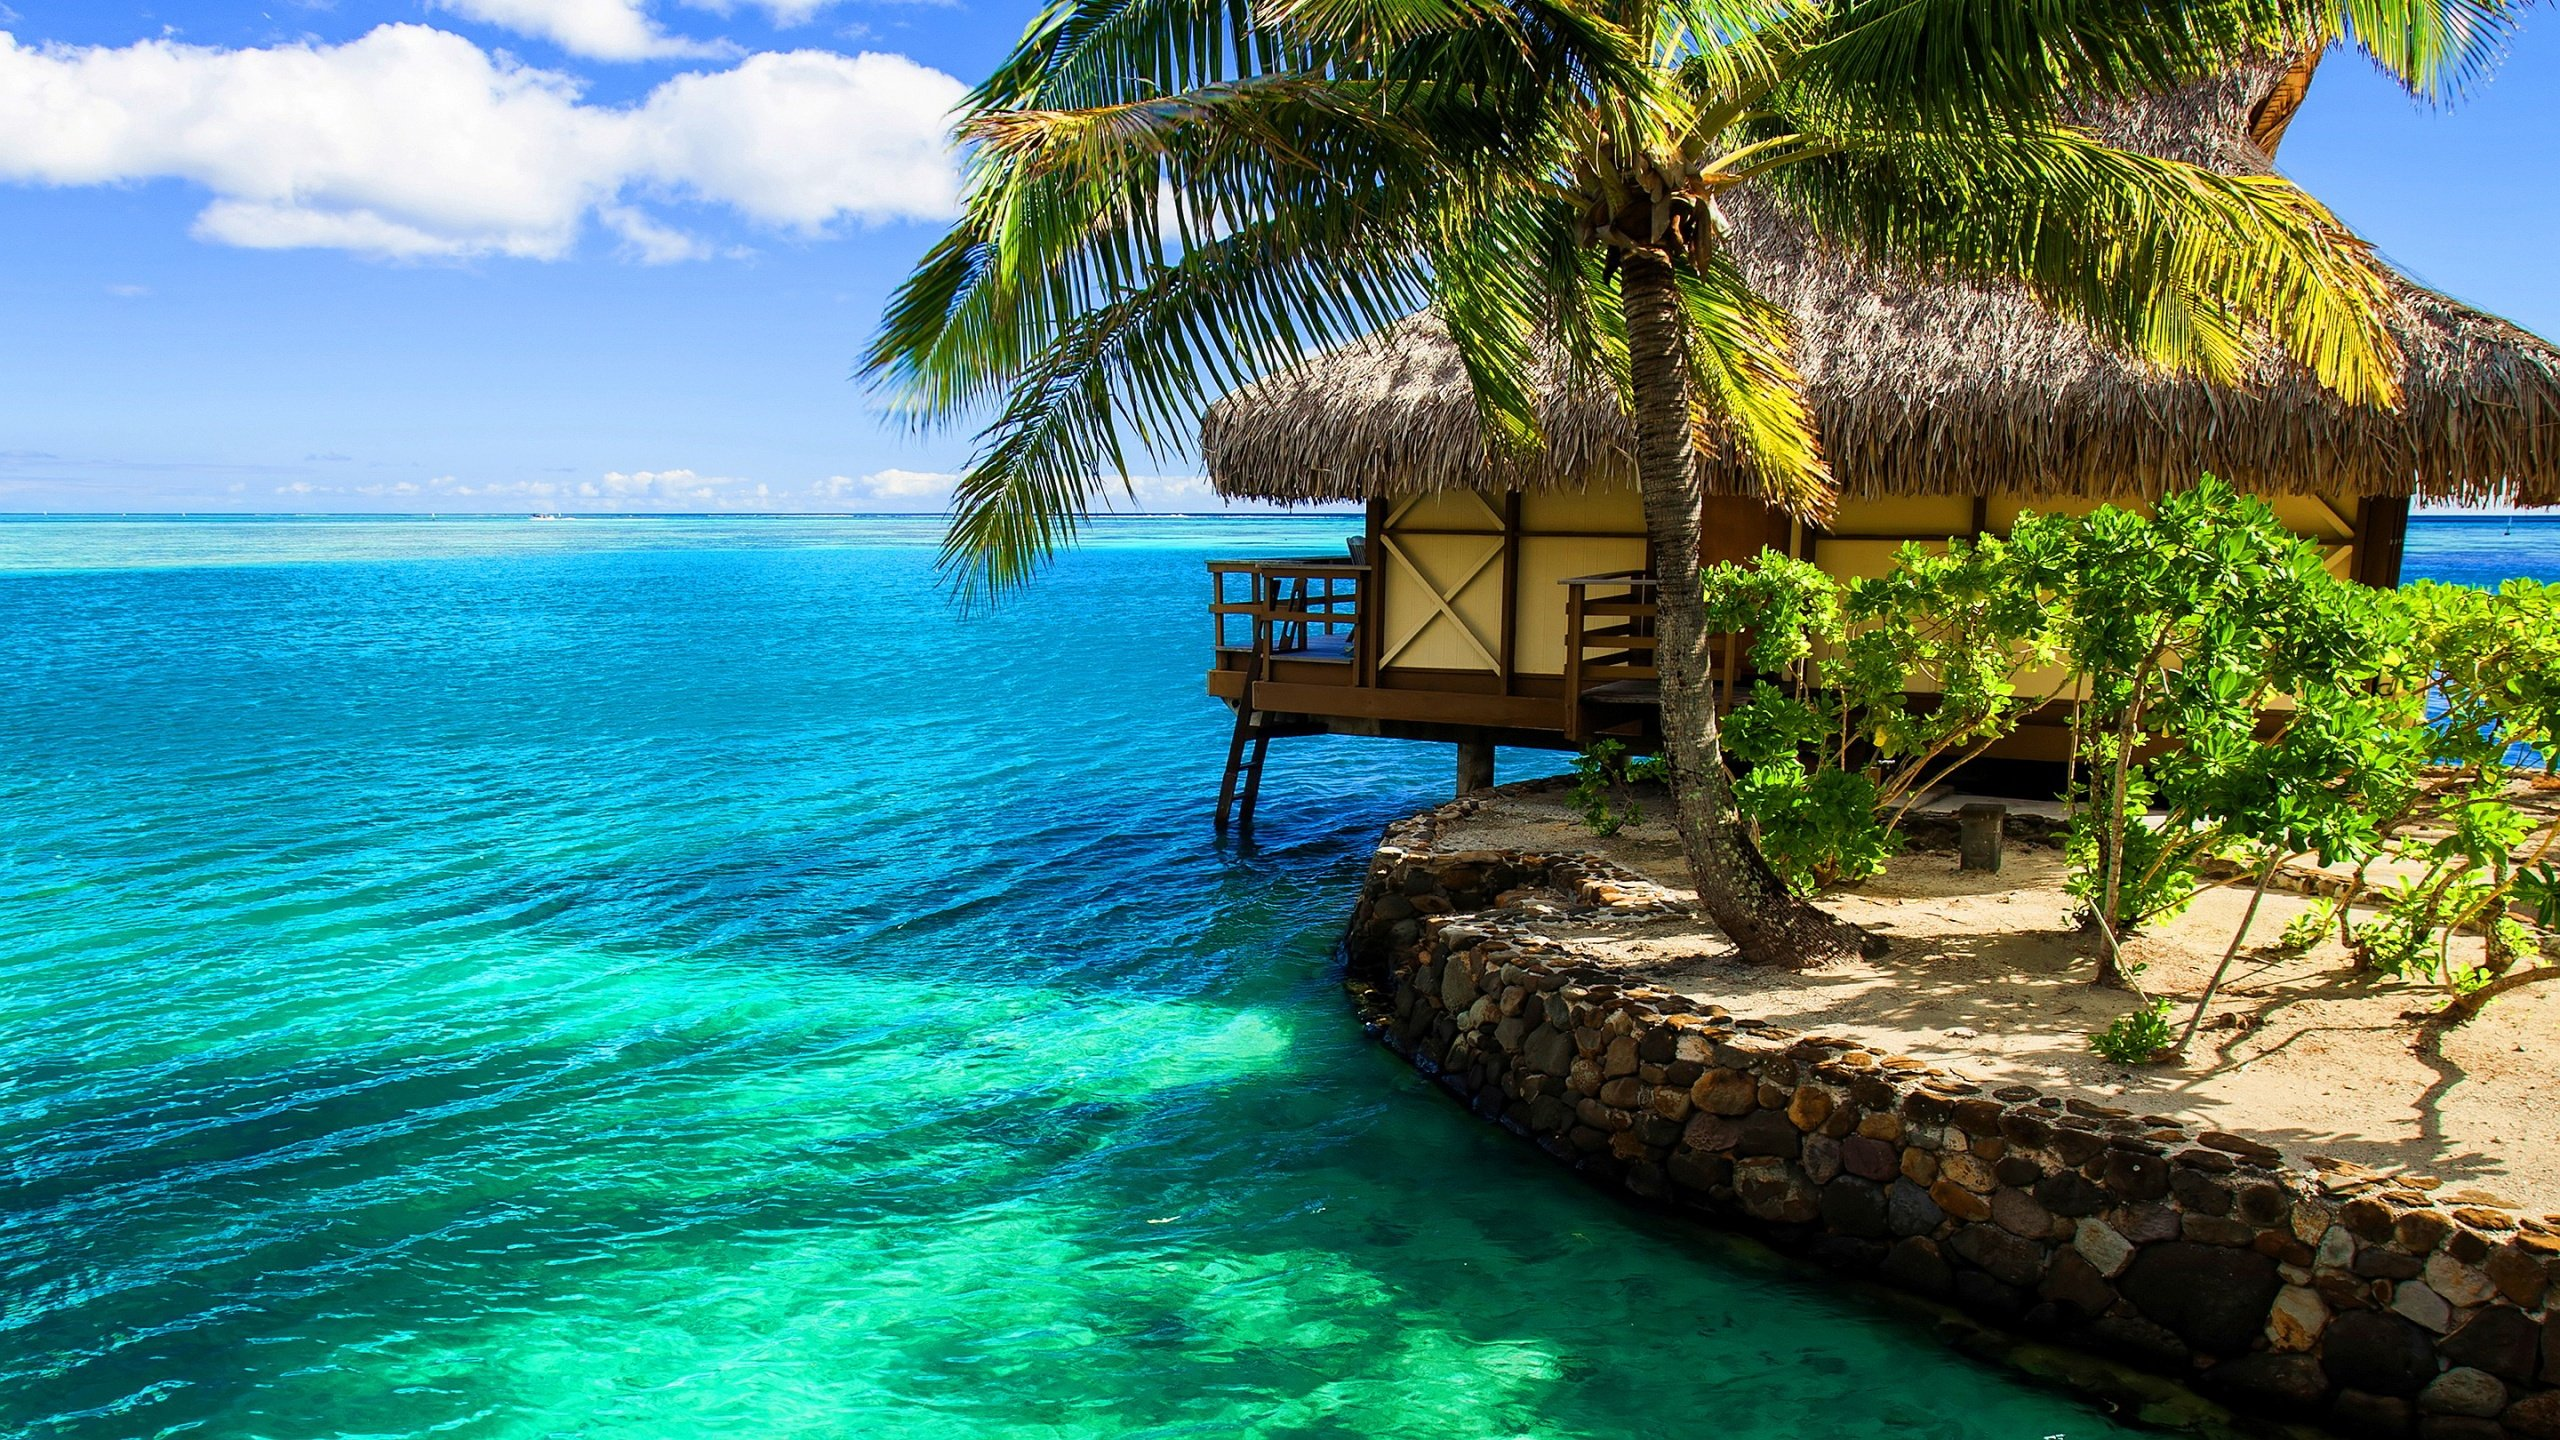 Nature Amazing Pics Hd Wallpapers Desktop Backgrounds Images Beach Resort Wallpaper Mojly